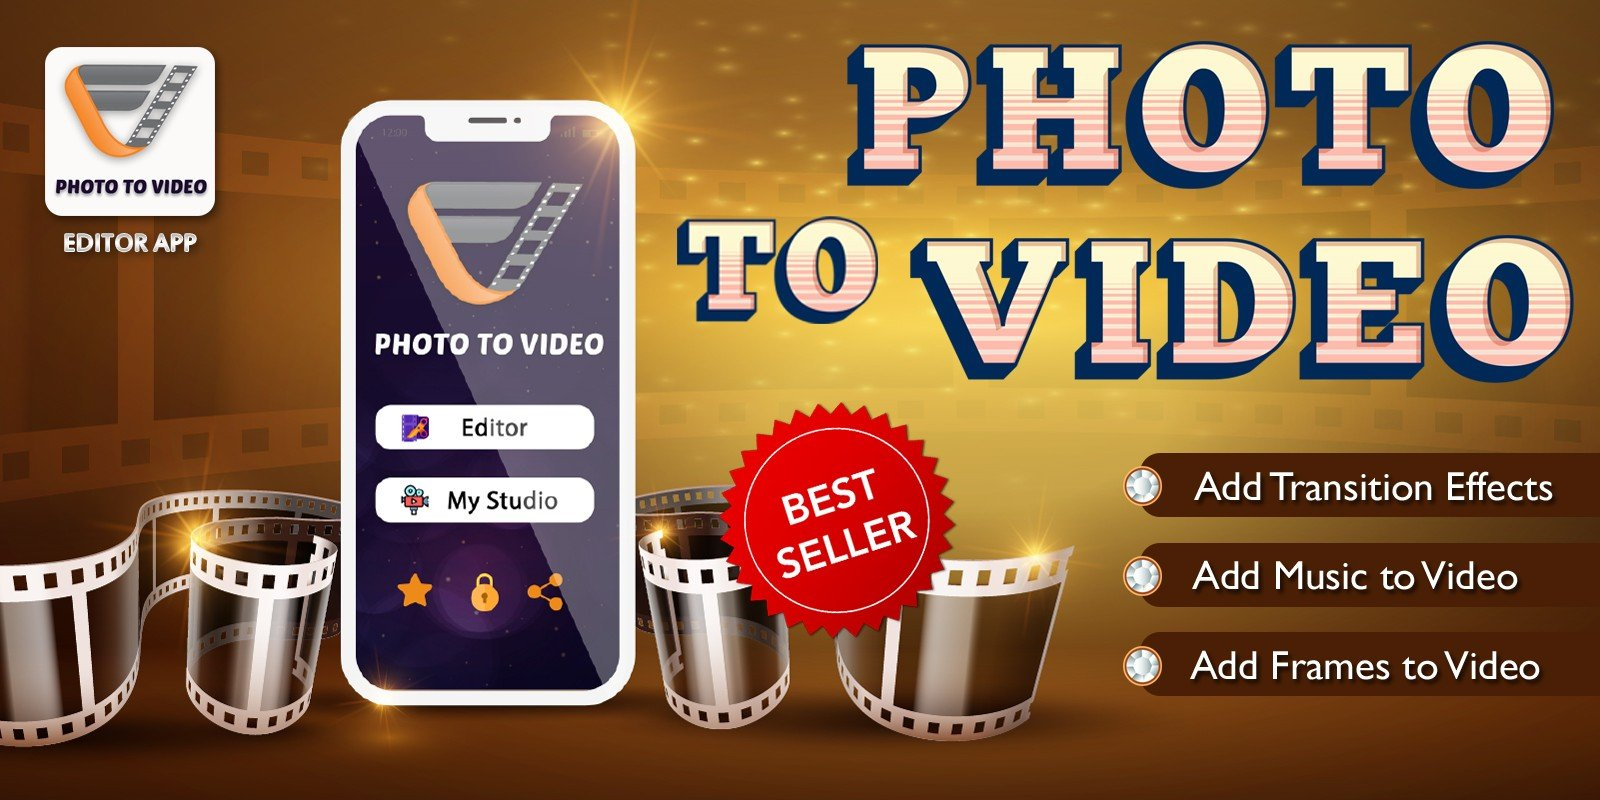 Photo To Video App - Android Source Code